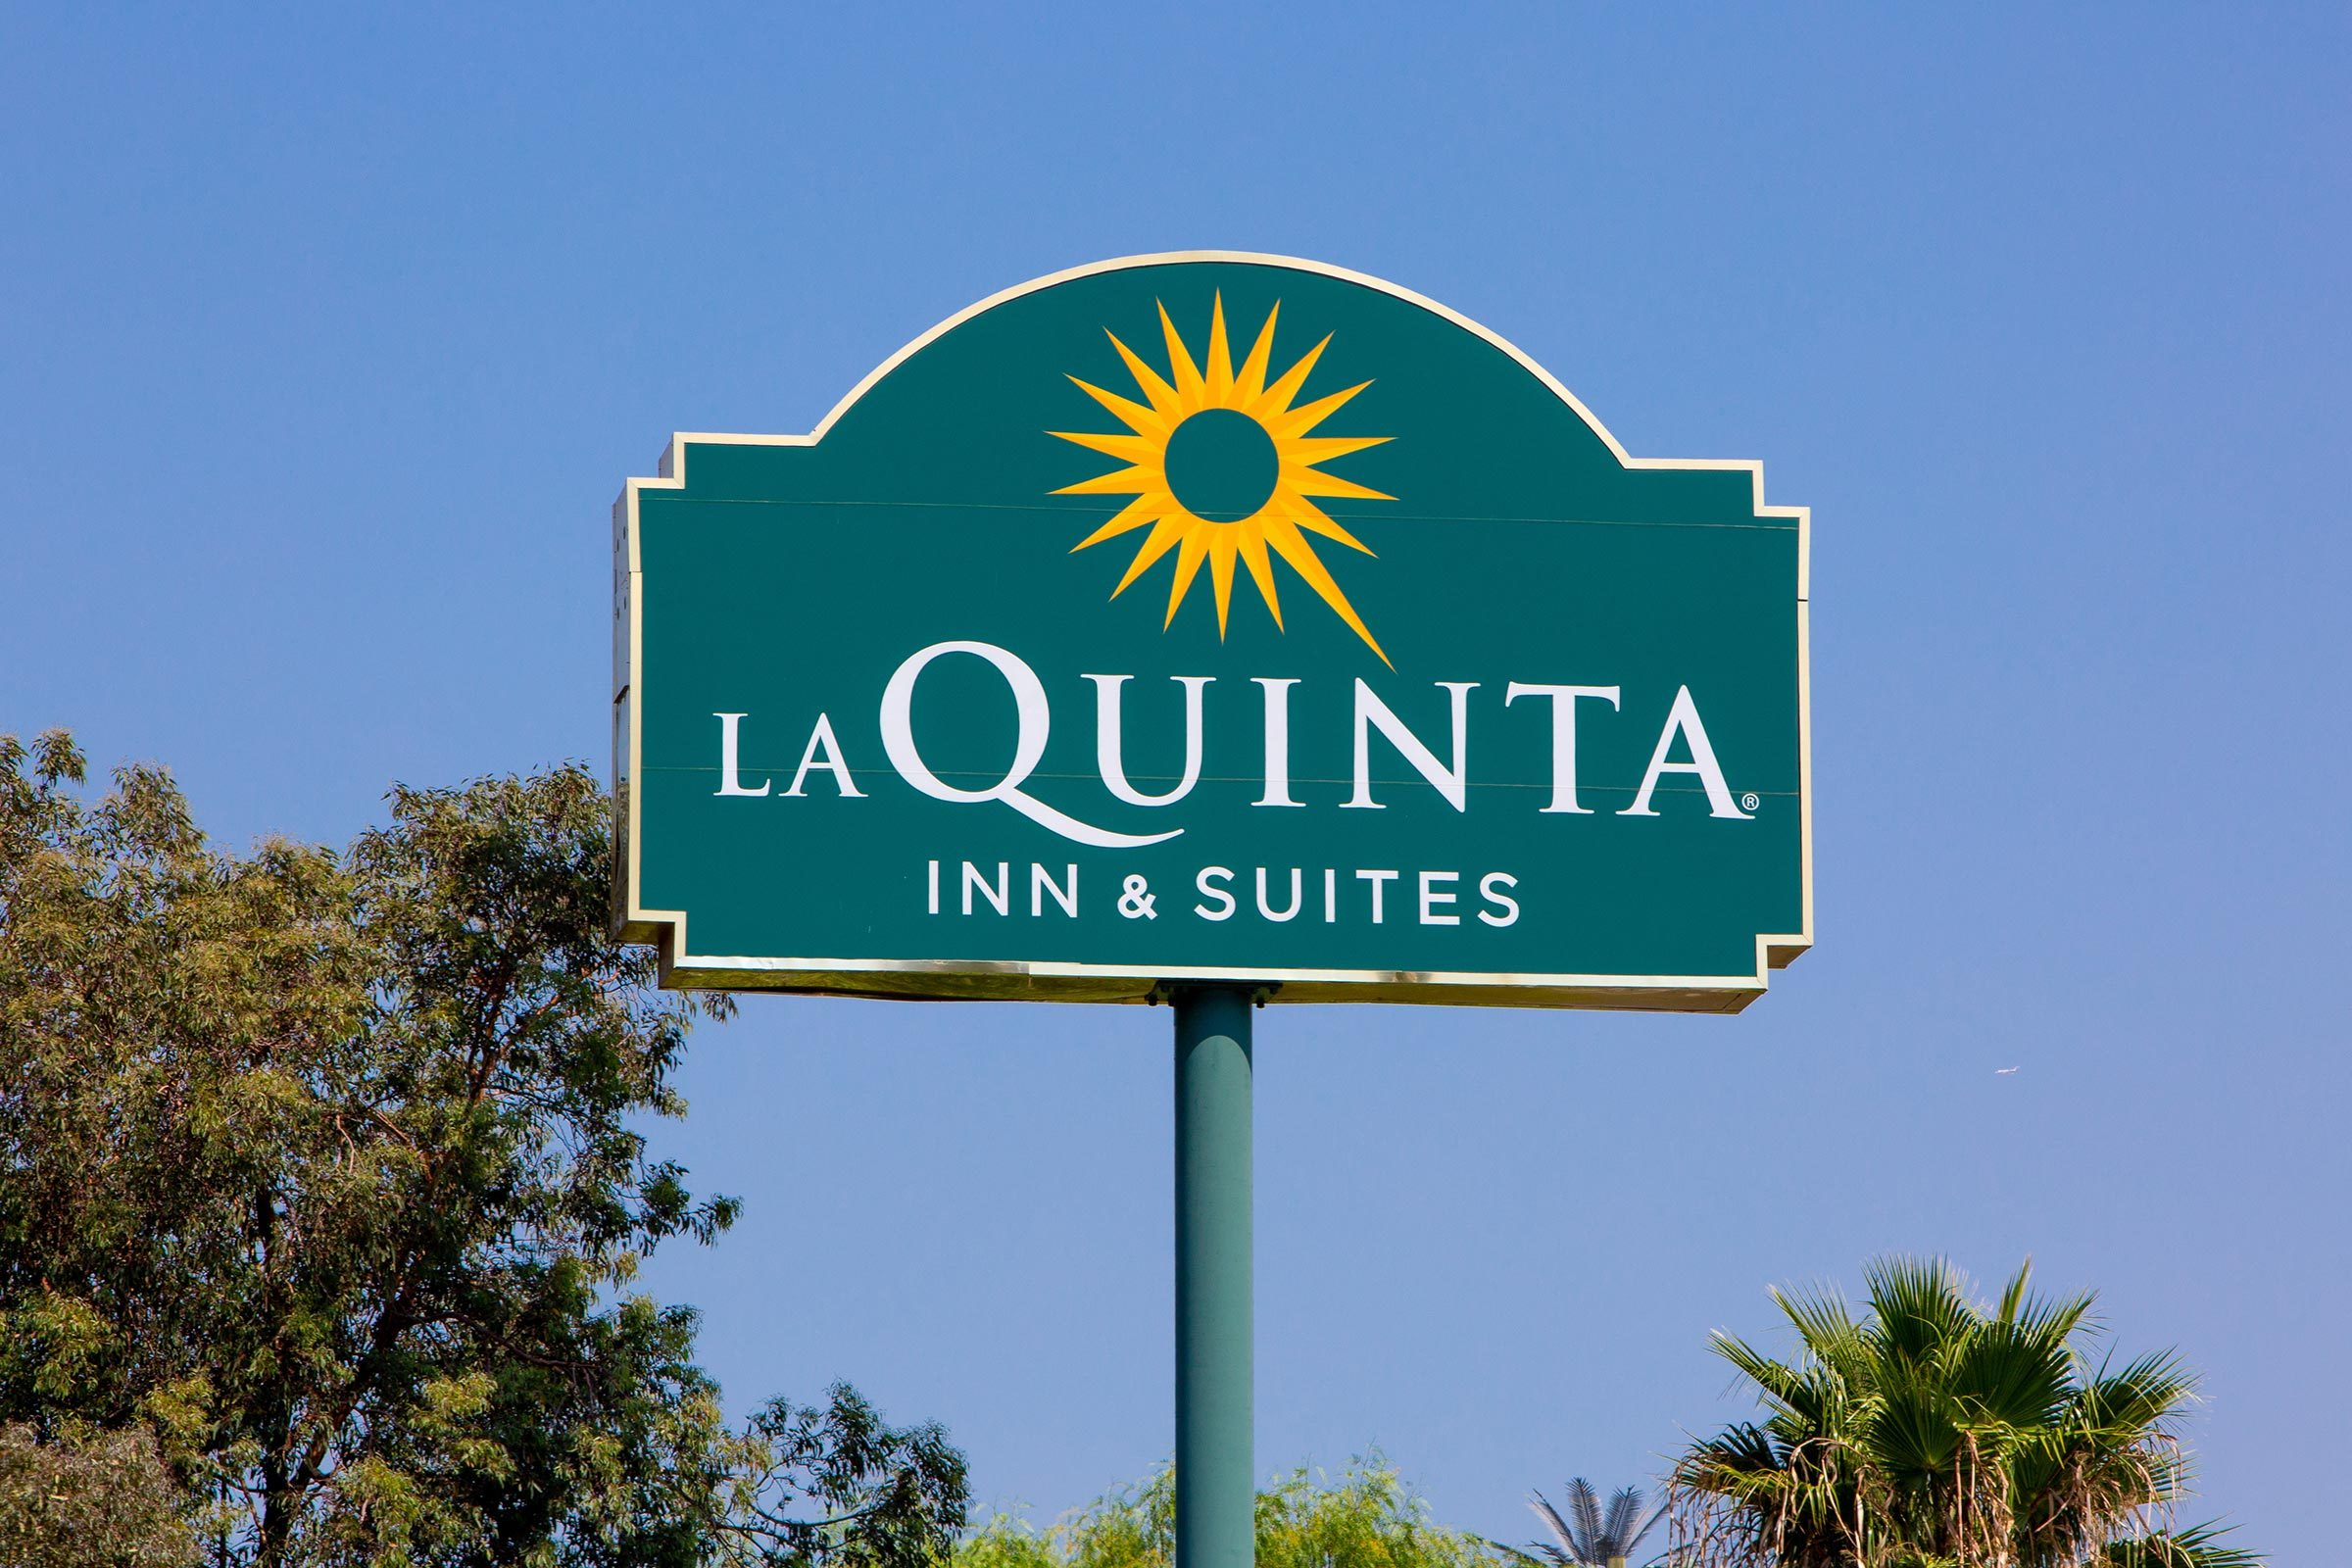 Santa Clarita, CA/USA. July 26, 2018. La Quinta Inn and Suites motel. La Quinta Inn is a chain of limited service hotels in the United States, Canada and Mexico.